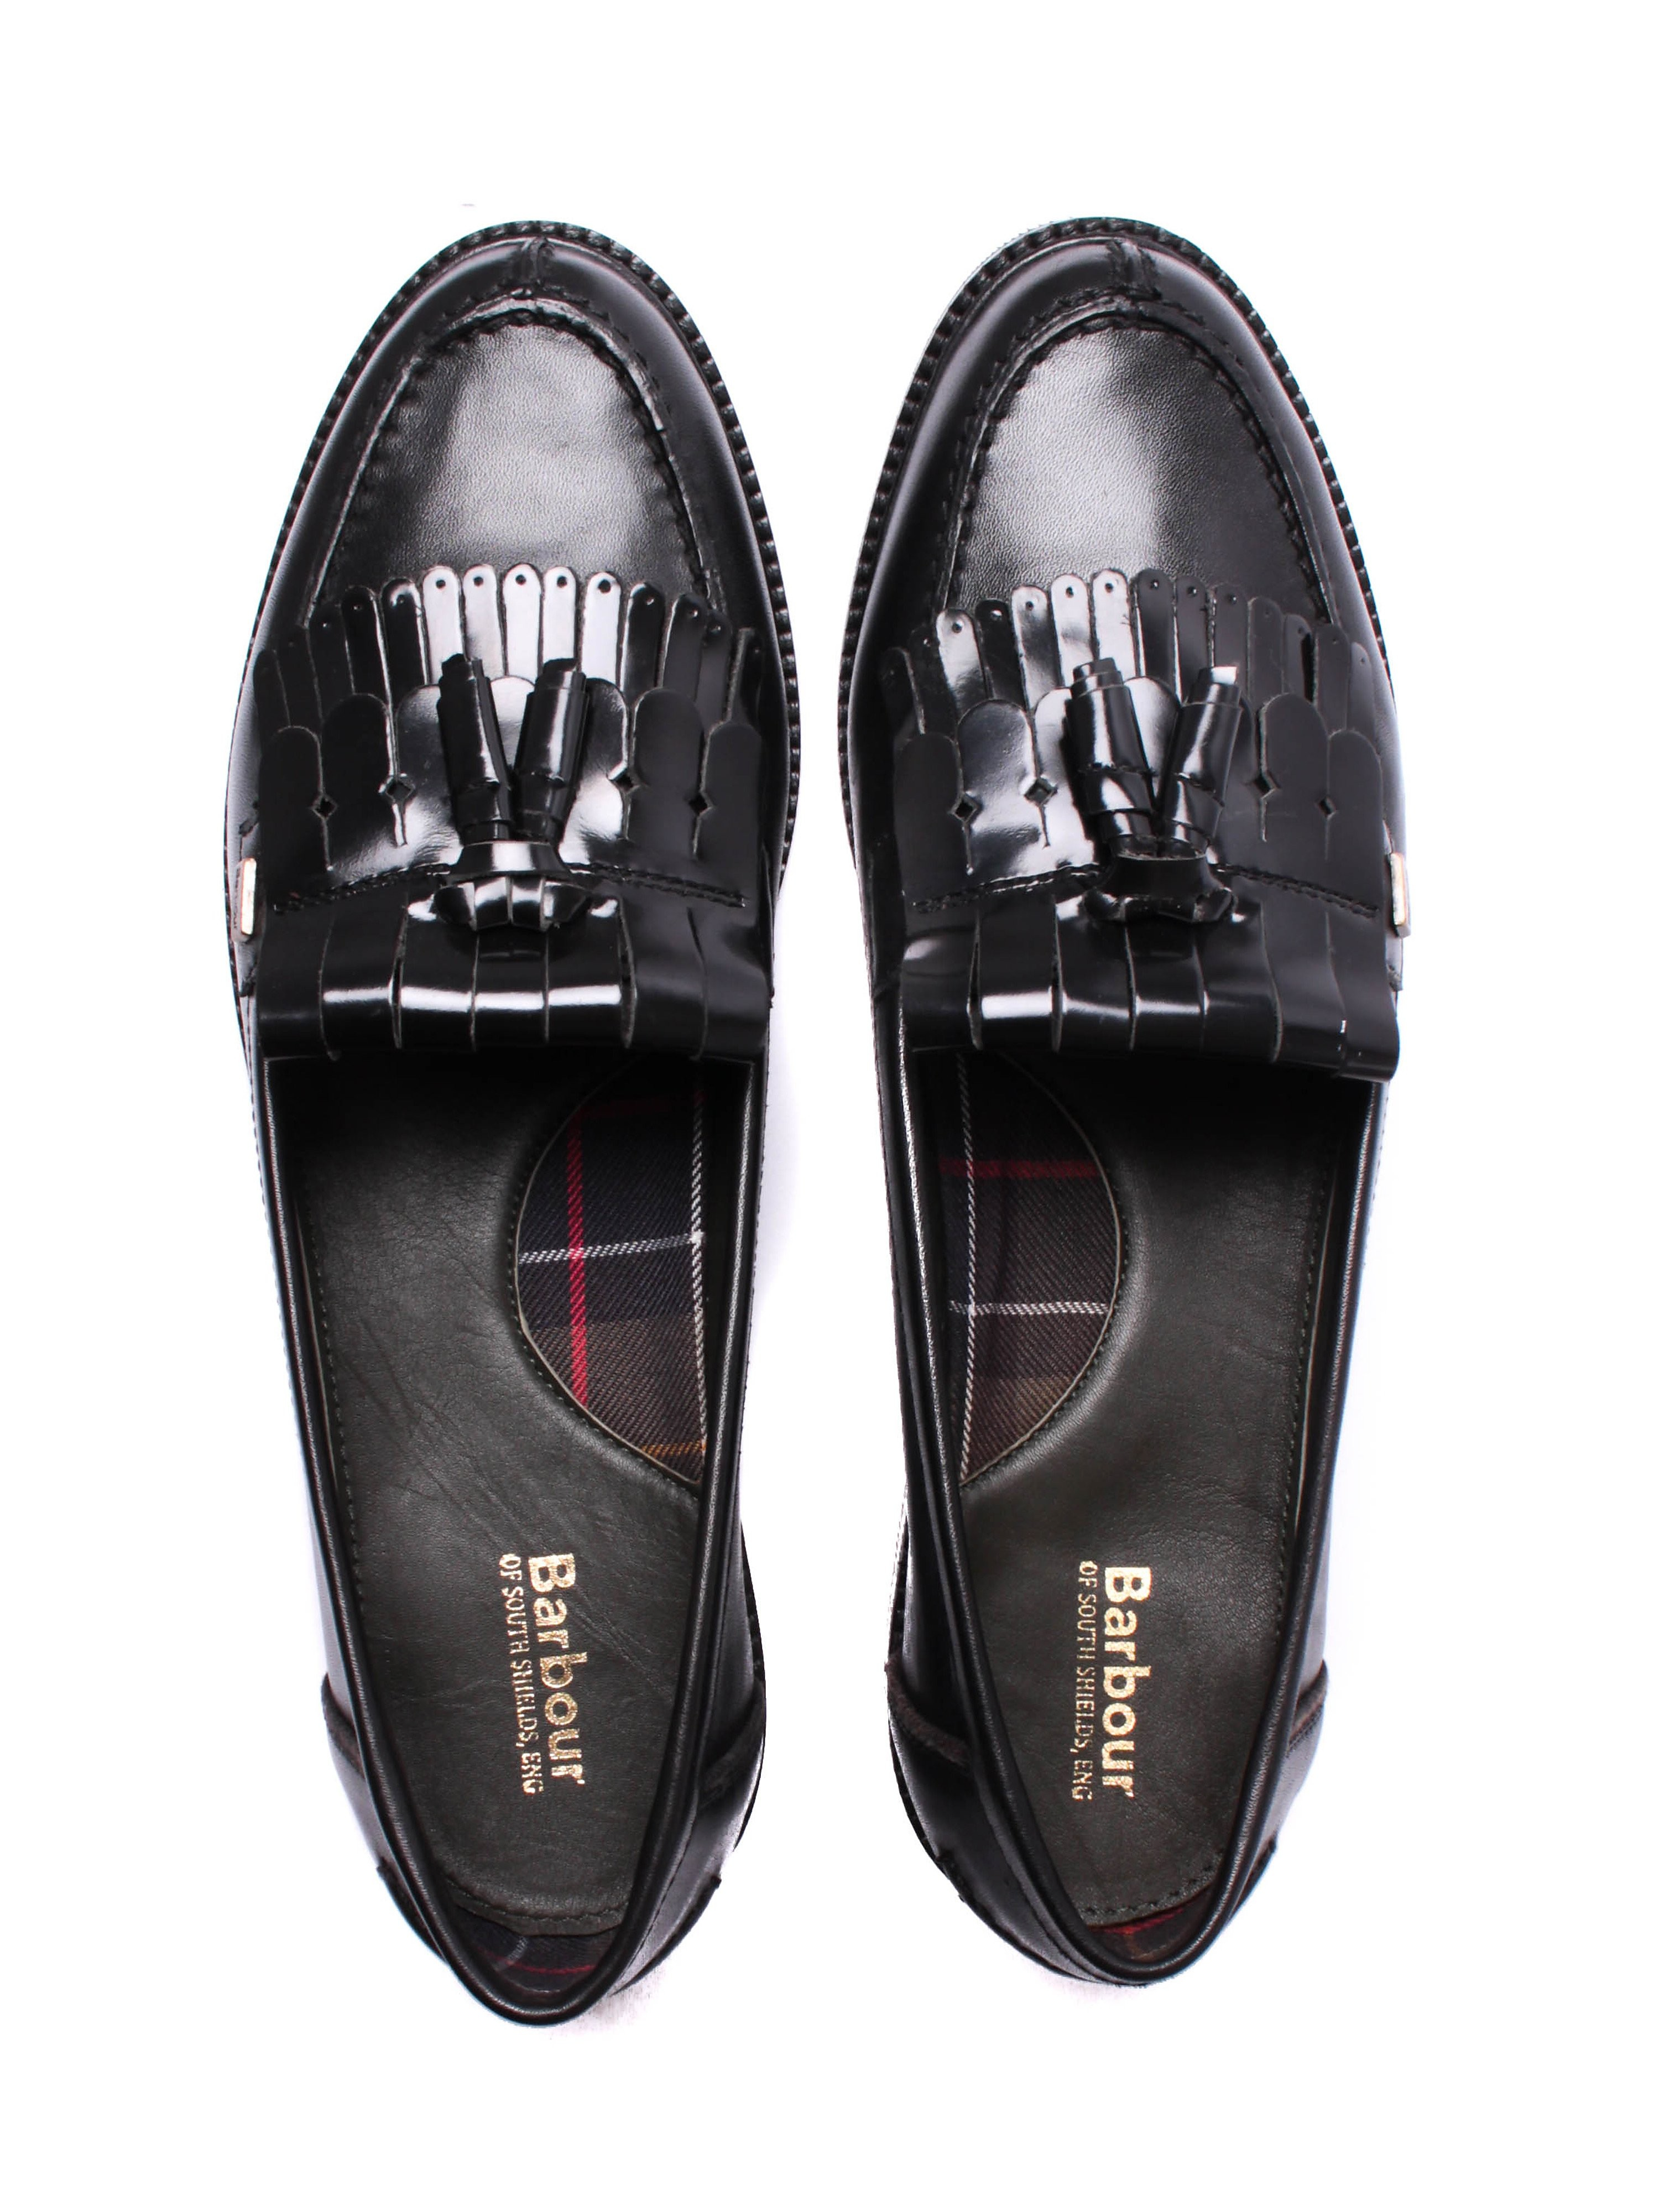 Barbour Women's Olivia Oiled Leather Tassel Loafers - Black